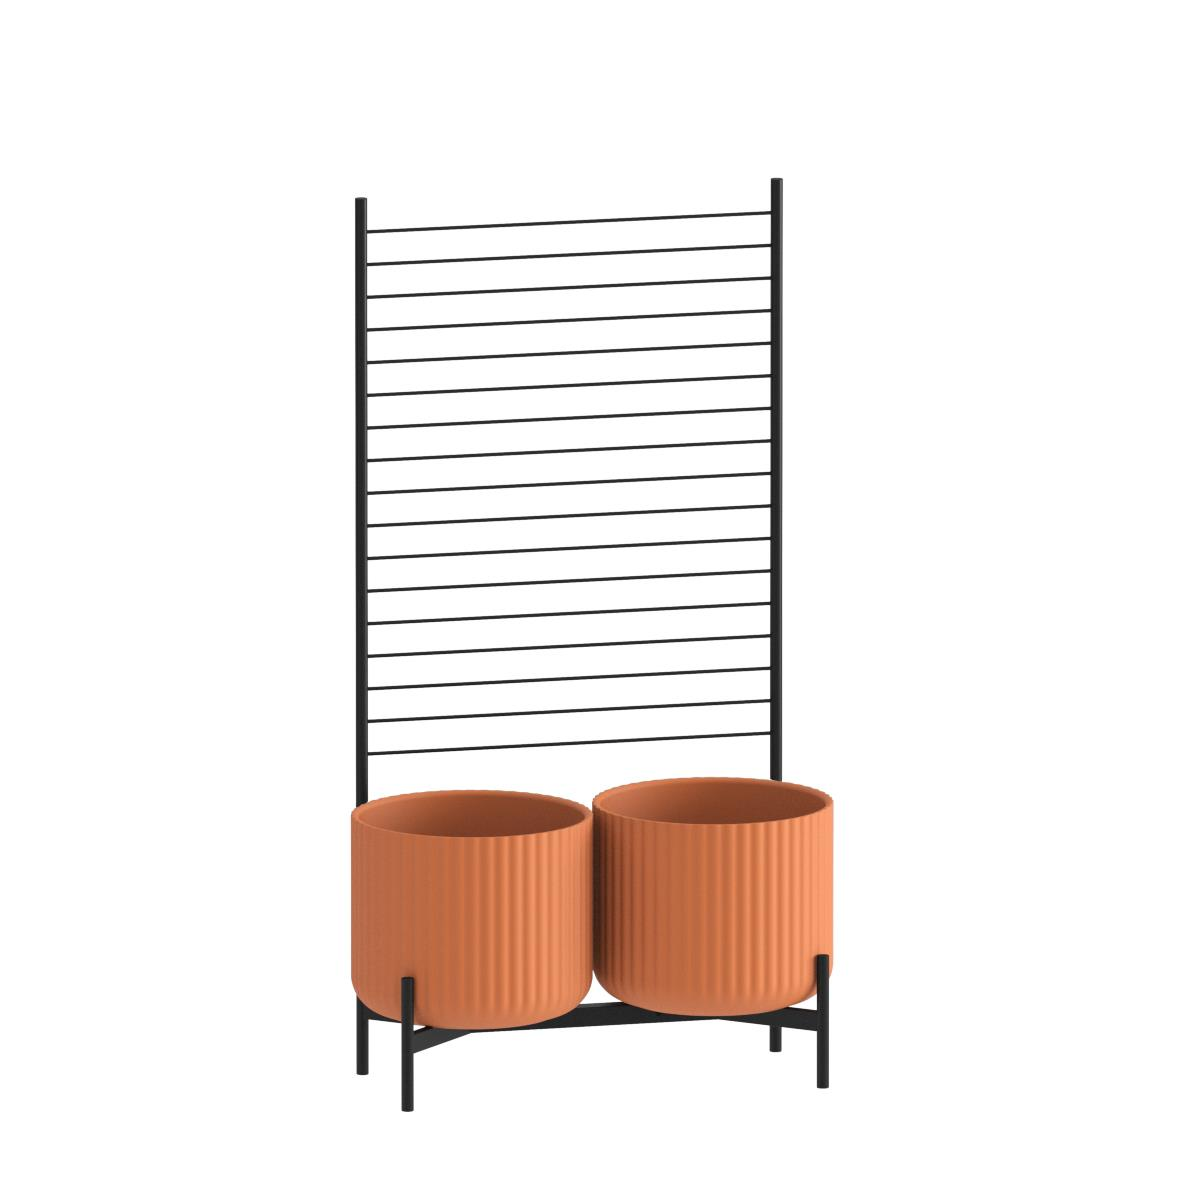 Klorofyll Double Medium Base & Medium Terracotta Concrete Planters with Espalier